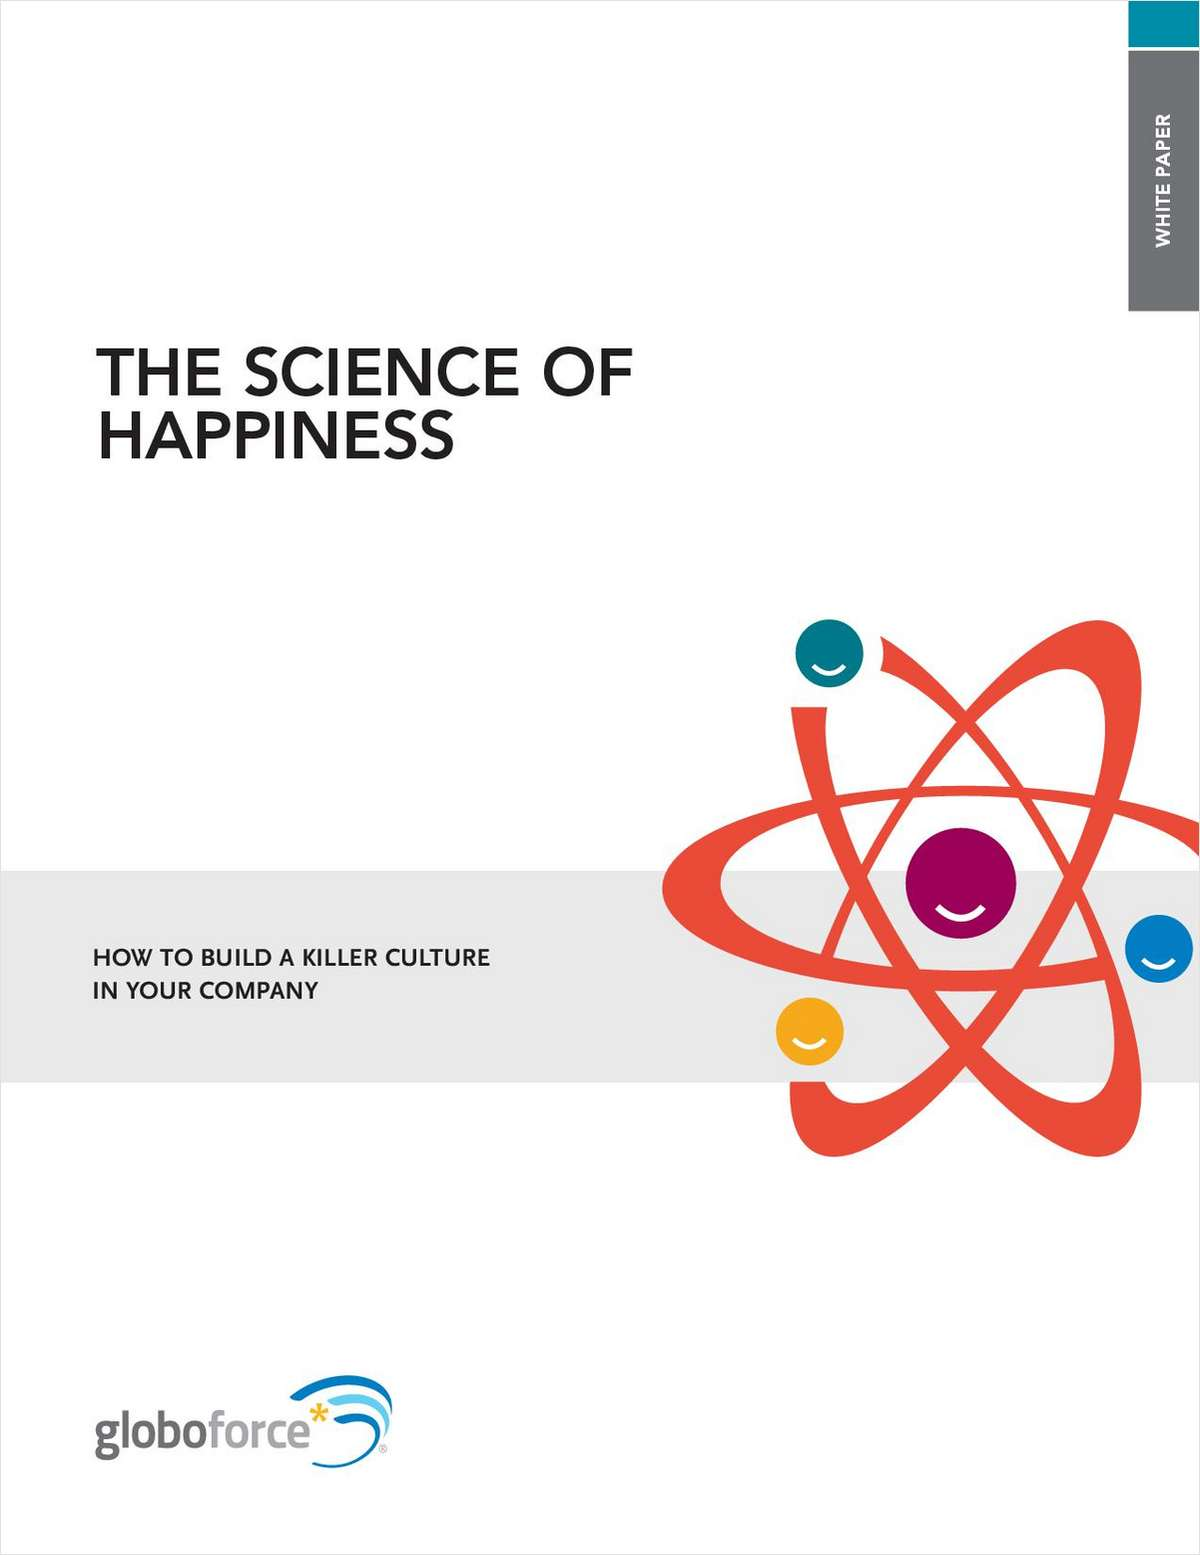 The Science of Happiness in Your Company